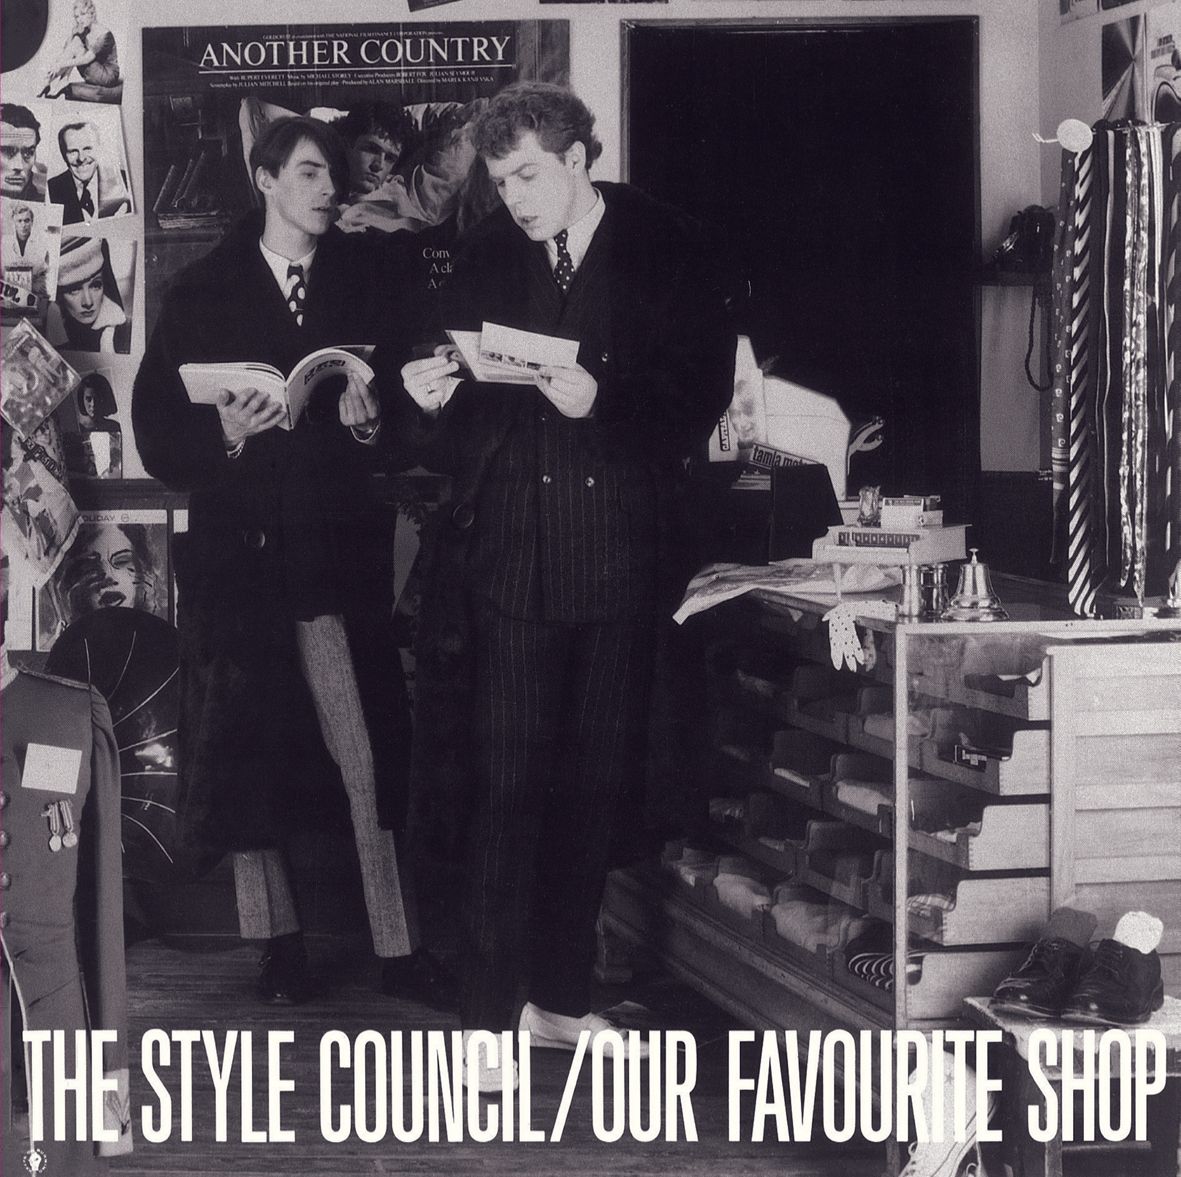 Our Favourite Shop by Style Council image